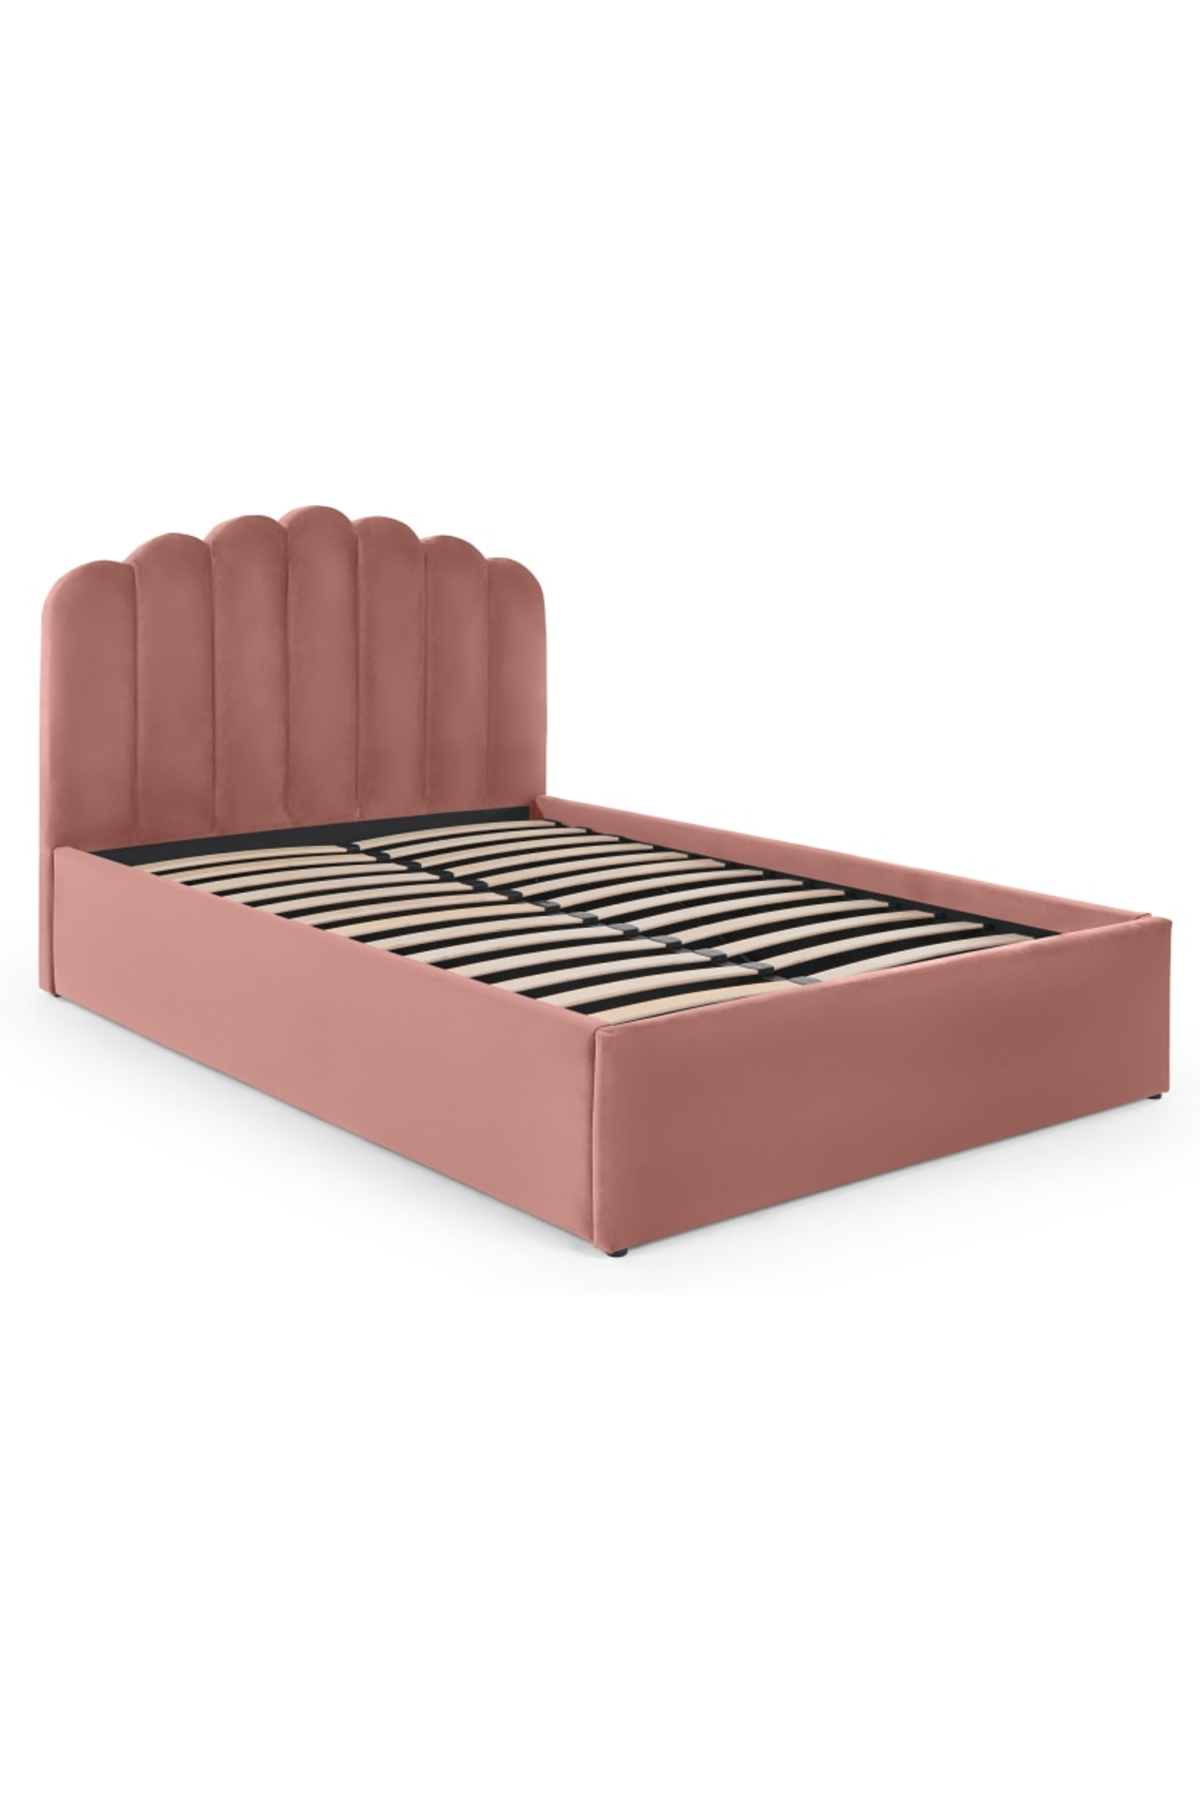 Delia Double Bed With Ottoman Storage Blush Pink Velvet King